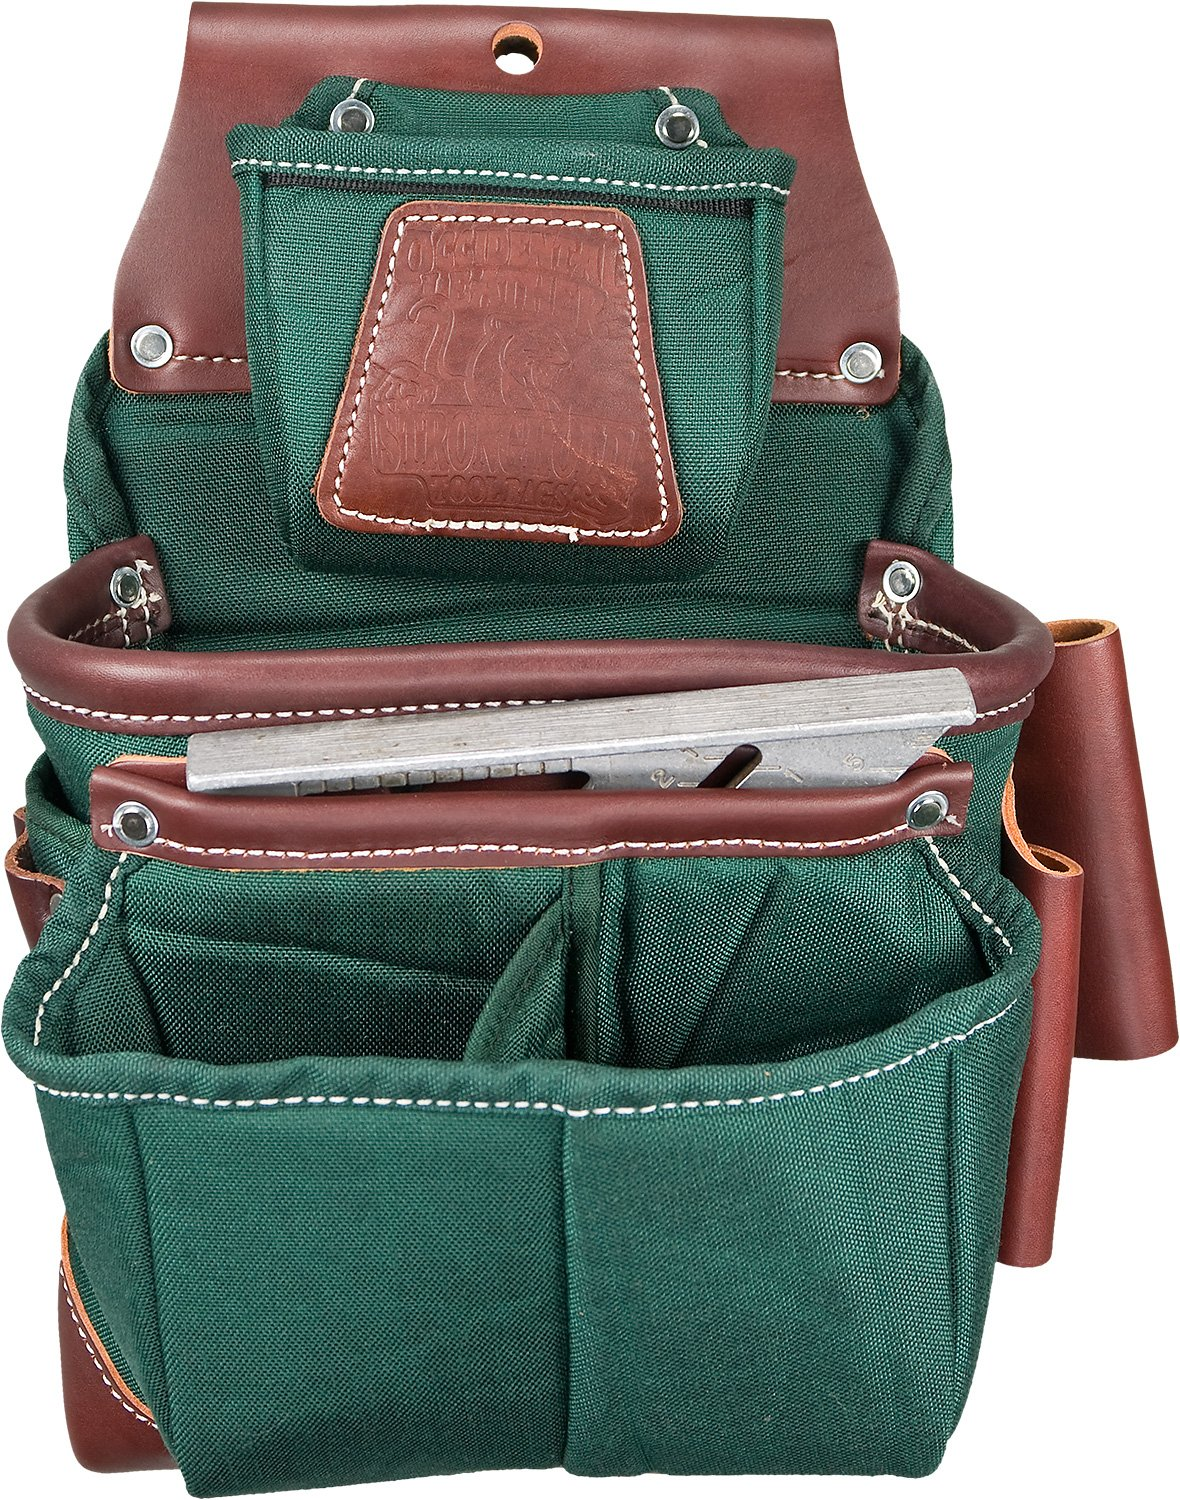 Occidental Leather 8583 Heritage FatLip Fastener Bag